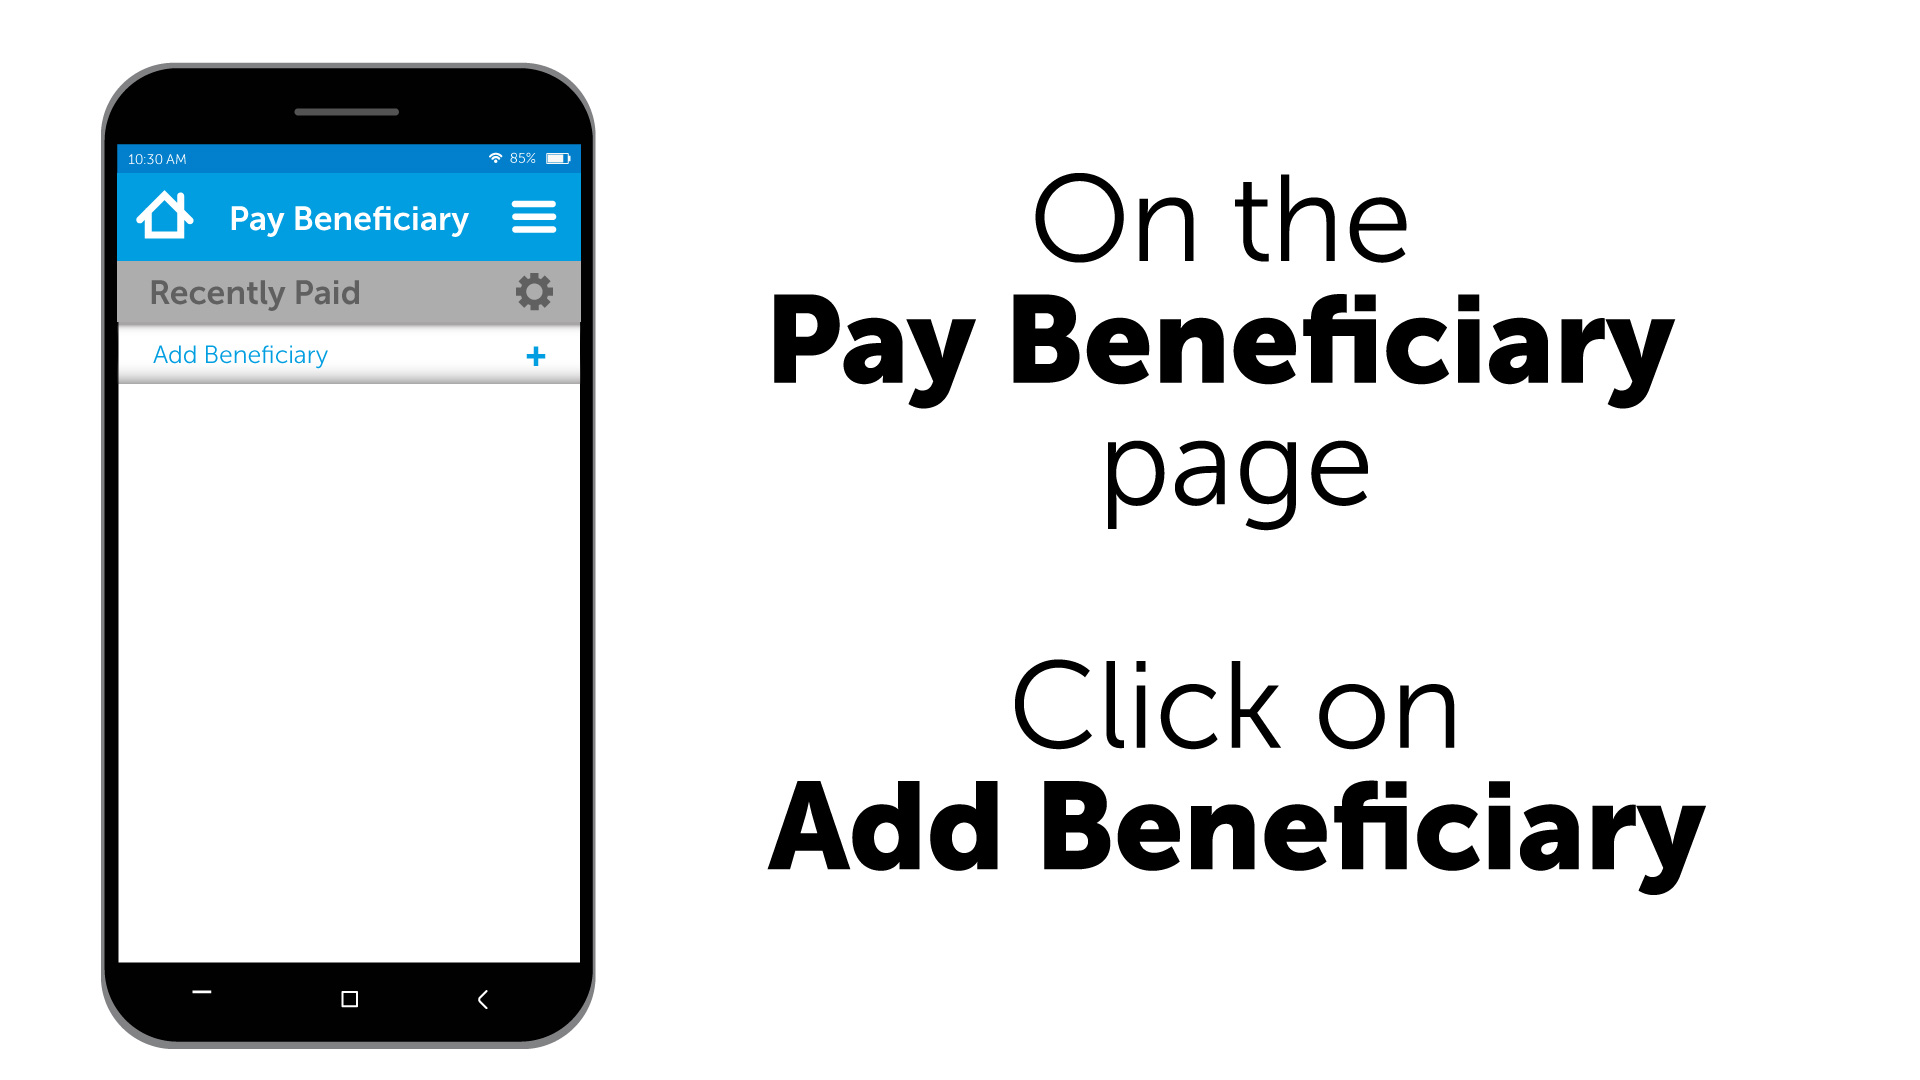 On the Pay Beneficiary page. Click on Add Beneficiary